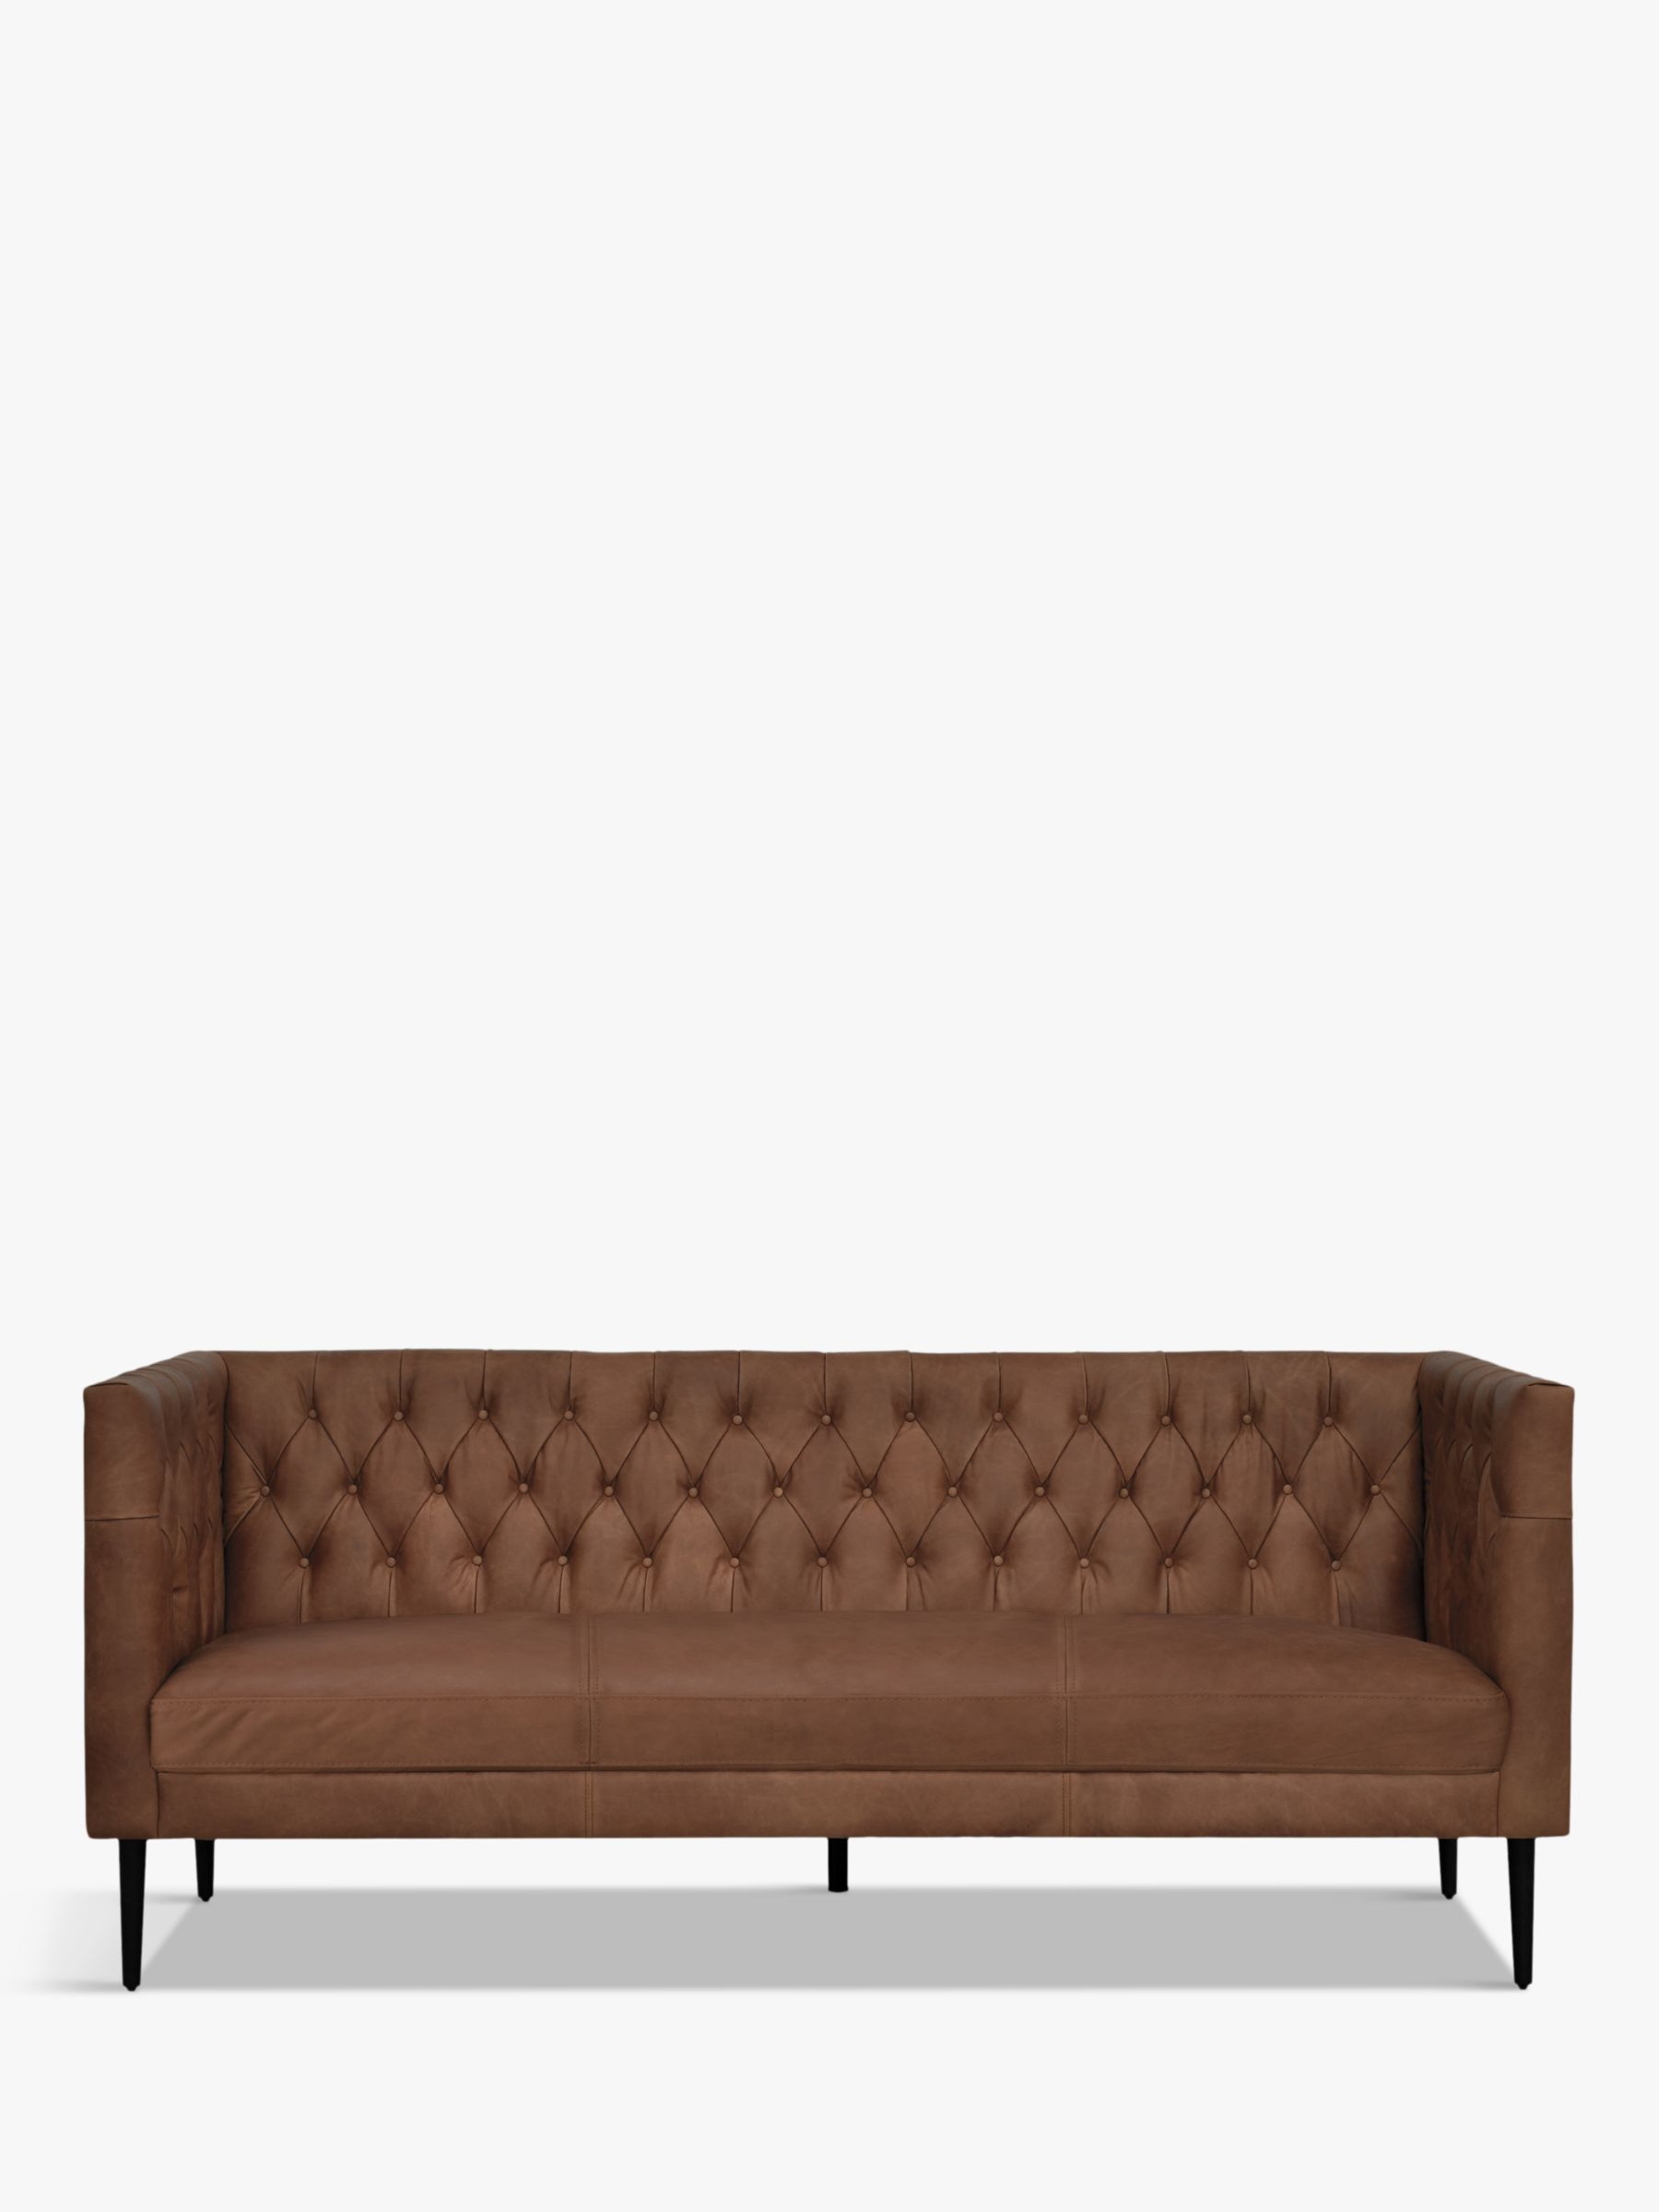 Halo Halo William Large 3 Seater Leather Sofa, Natural Washed Chocolate